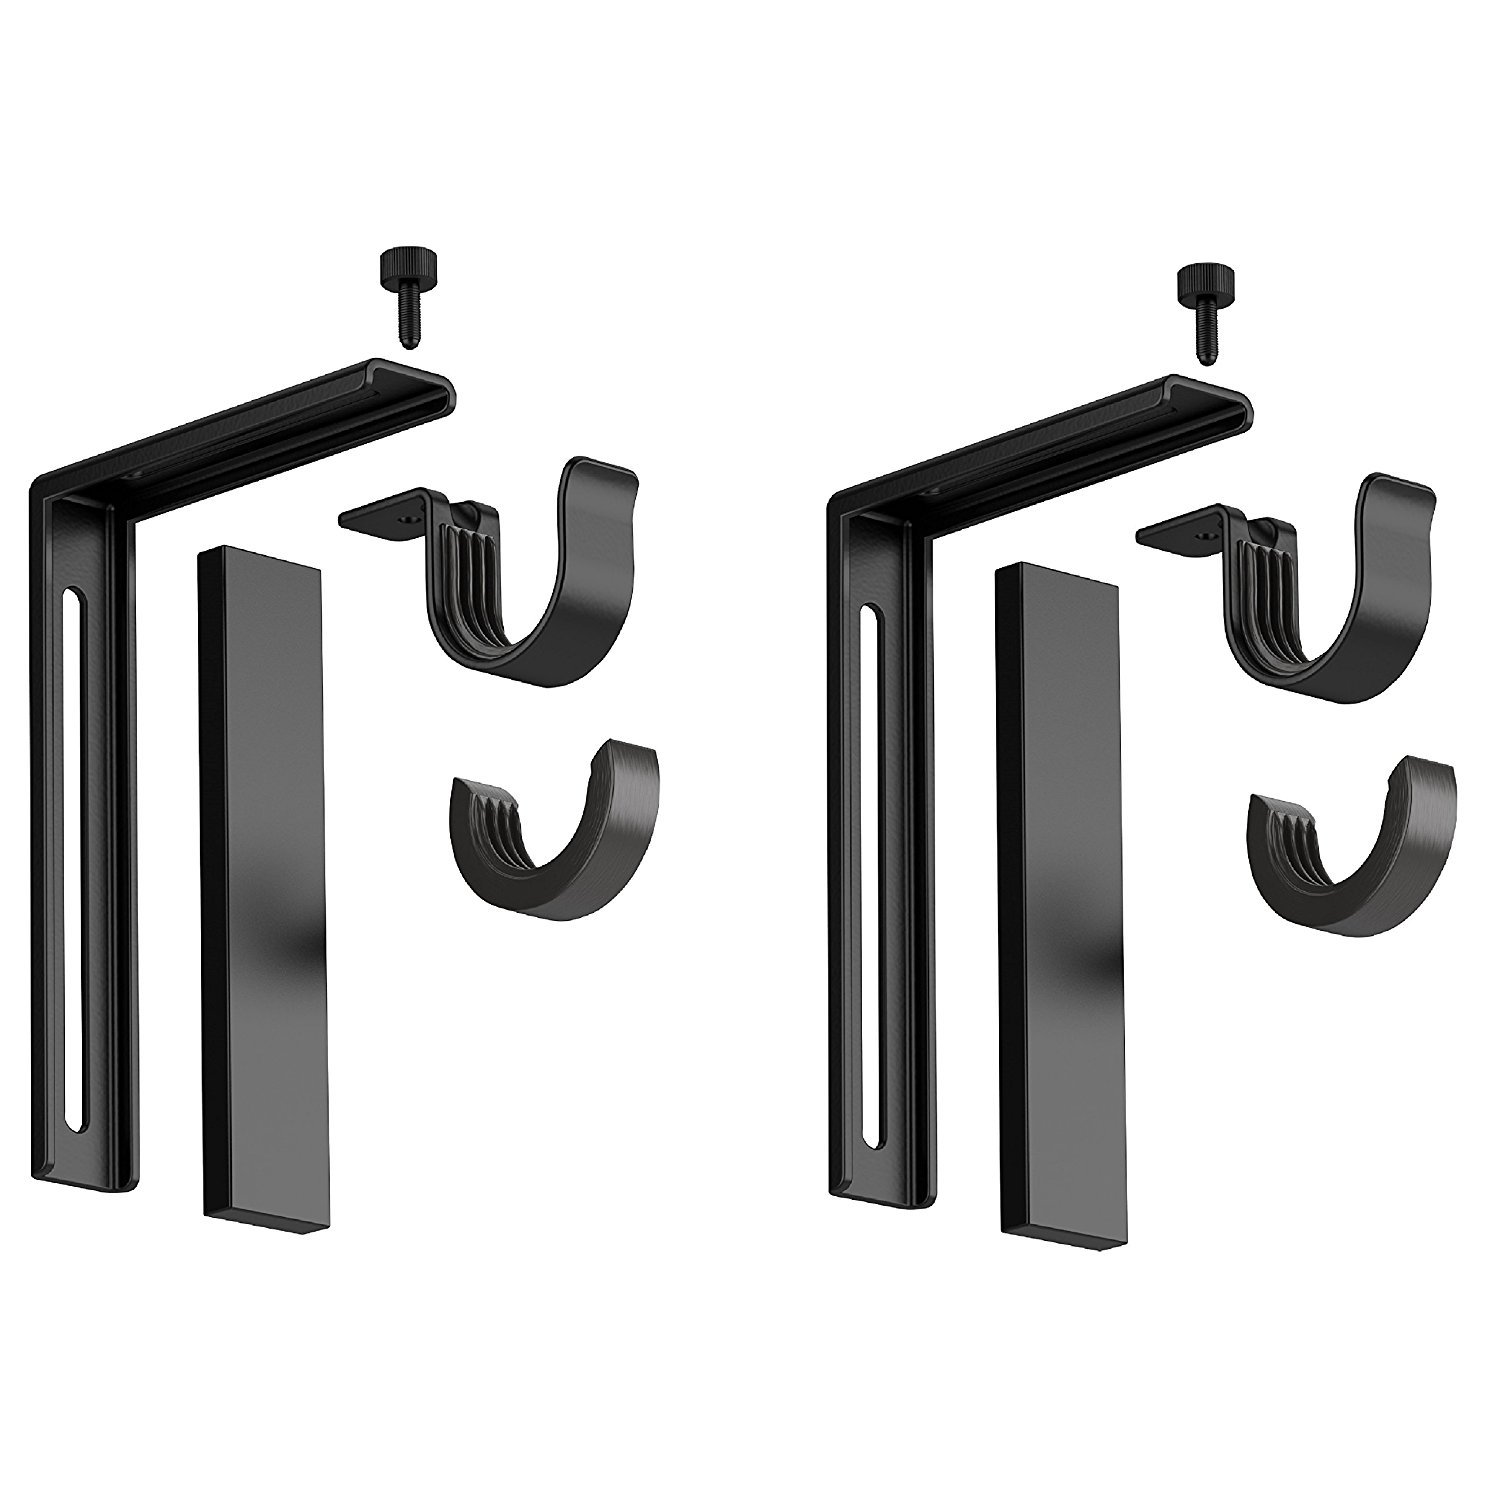 Set of 2 Ikea Betydlig Wall or Ceiling Curtain Rod Brackets Steel Black Adjustable